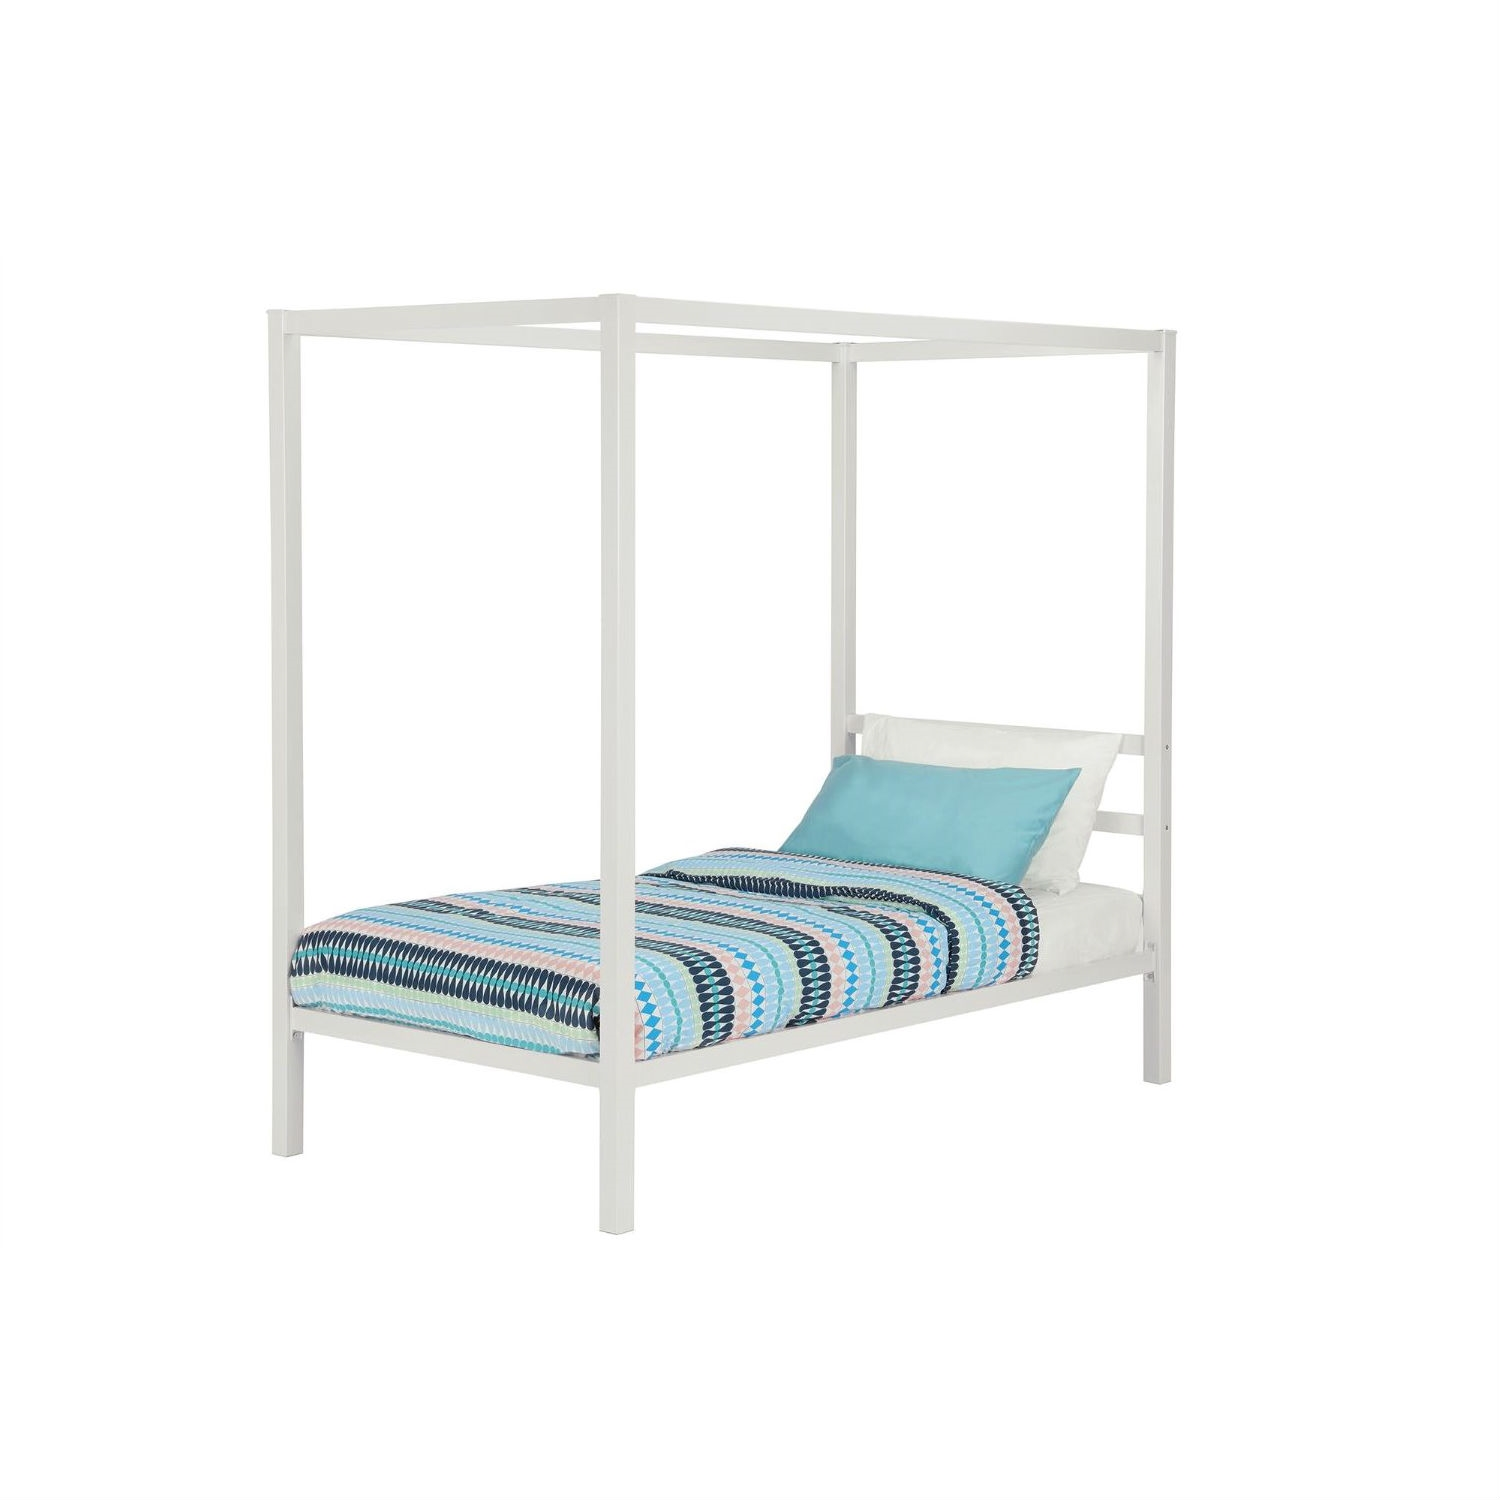 Twin Size White Metal Platform Canopy Bed Frame No Box Spring Necessary Fastfurnishings Com